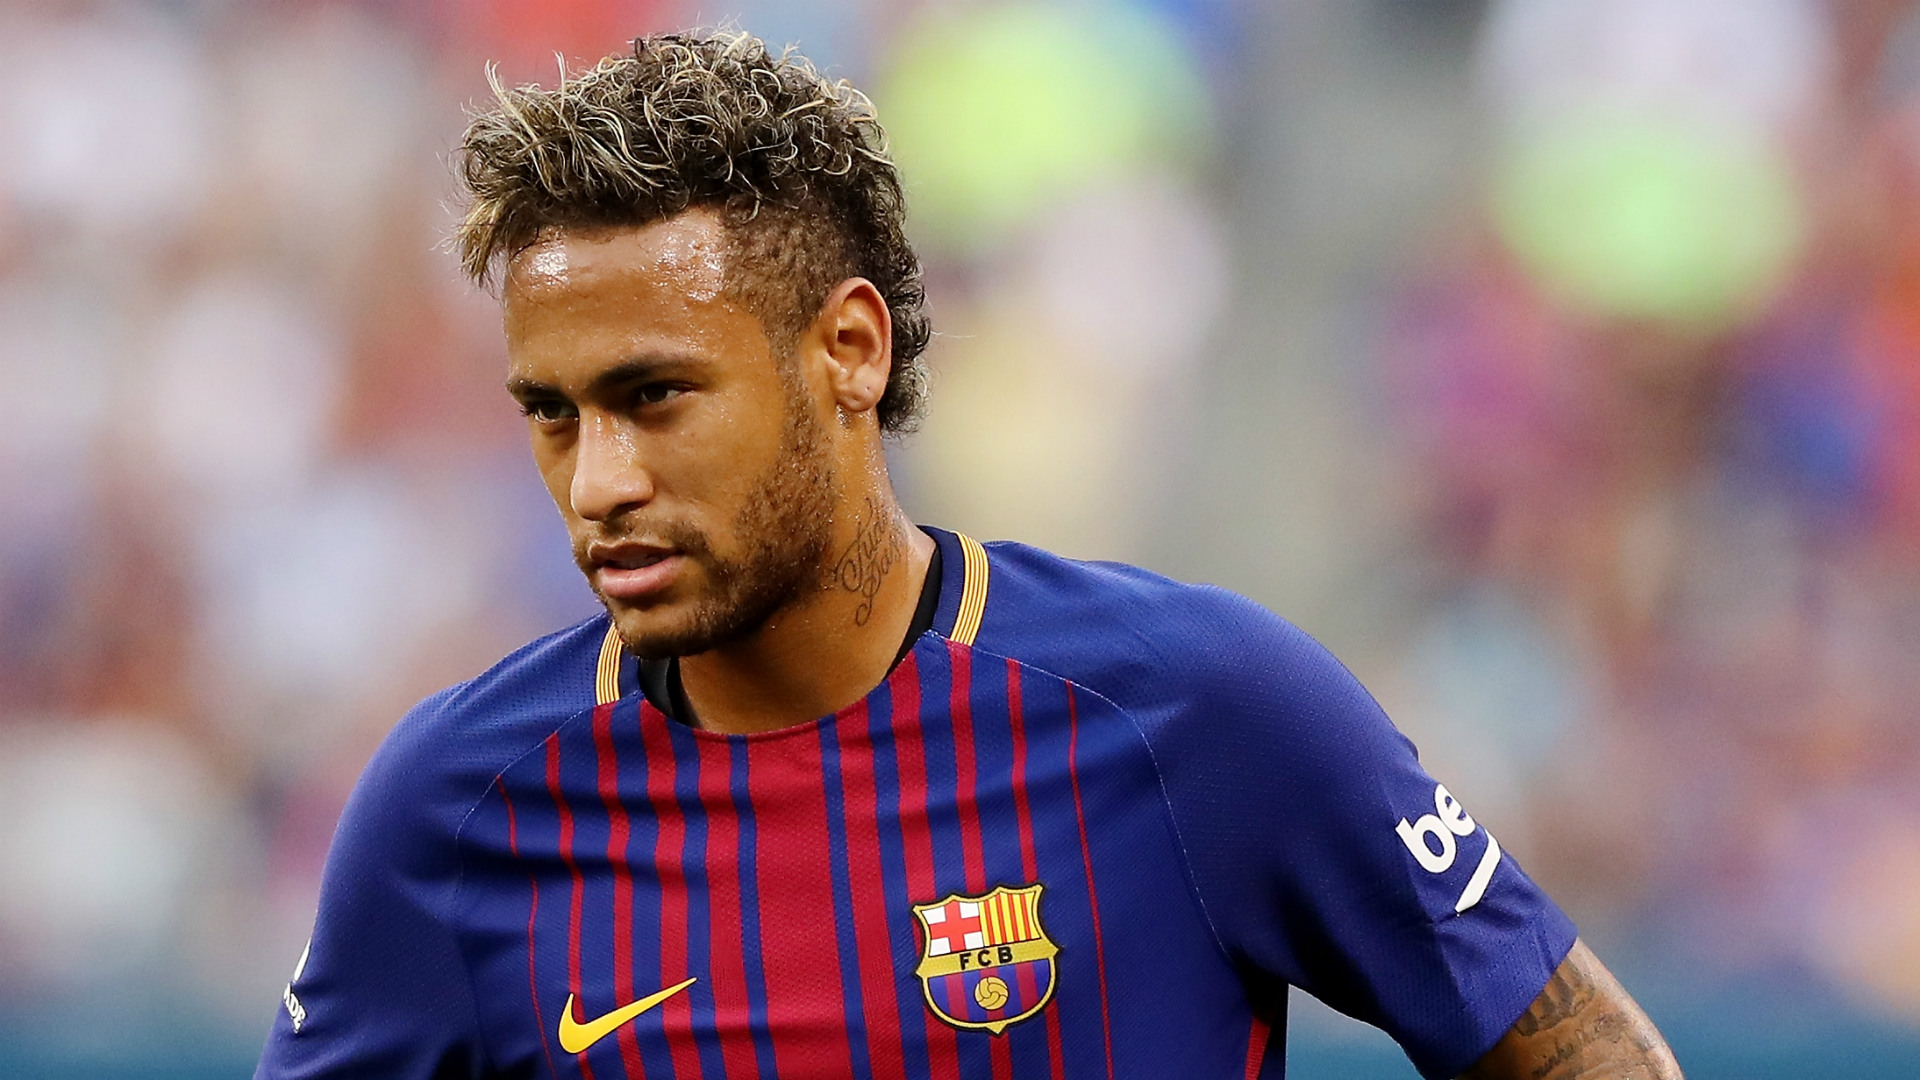 Neymar flies back to Barcelona as talks continue over PSG move